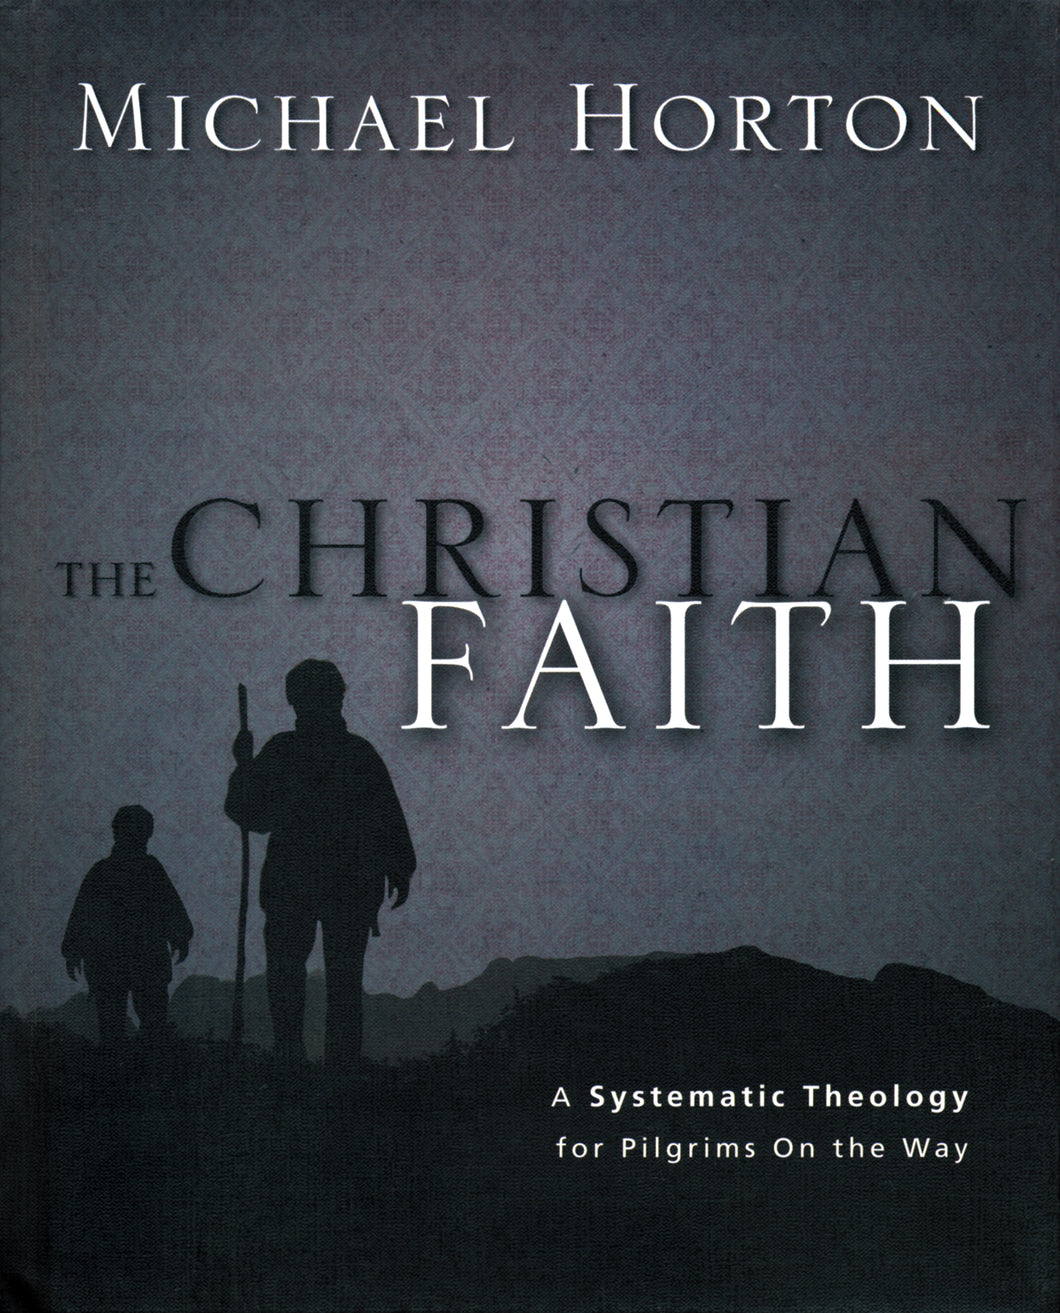 The Christian Faith: A Systematic Theology for Pilgrims on the Way — Hardcover